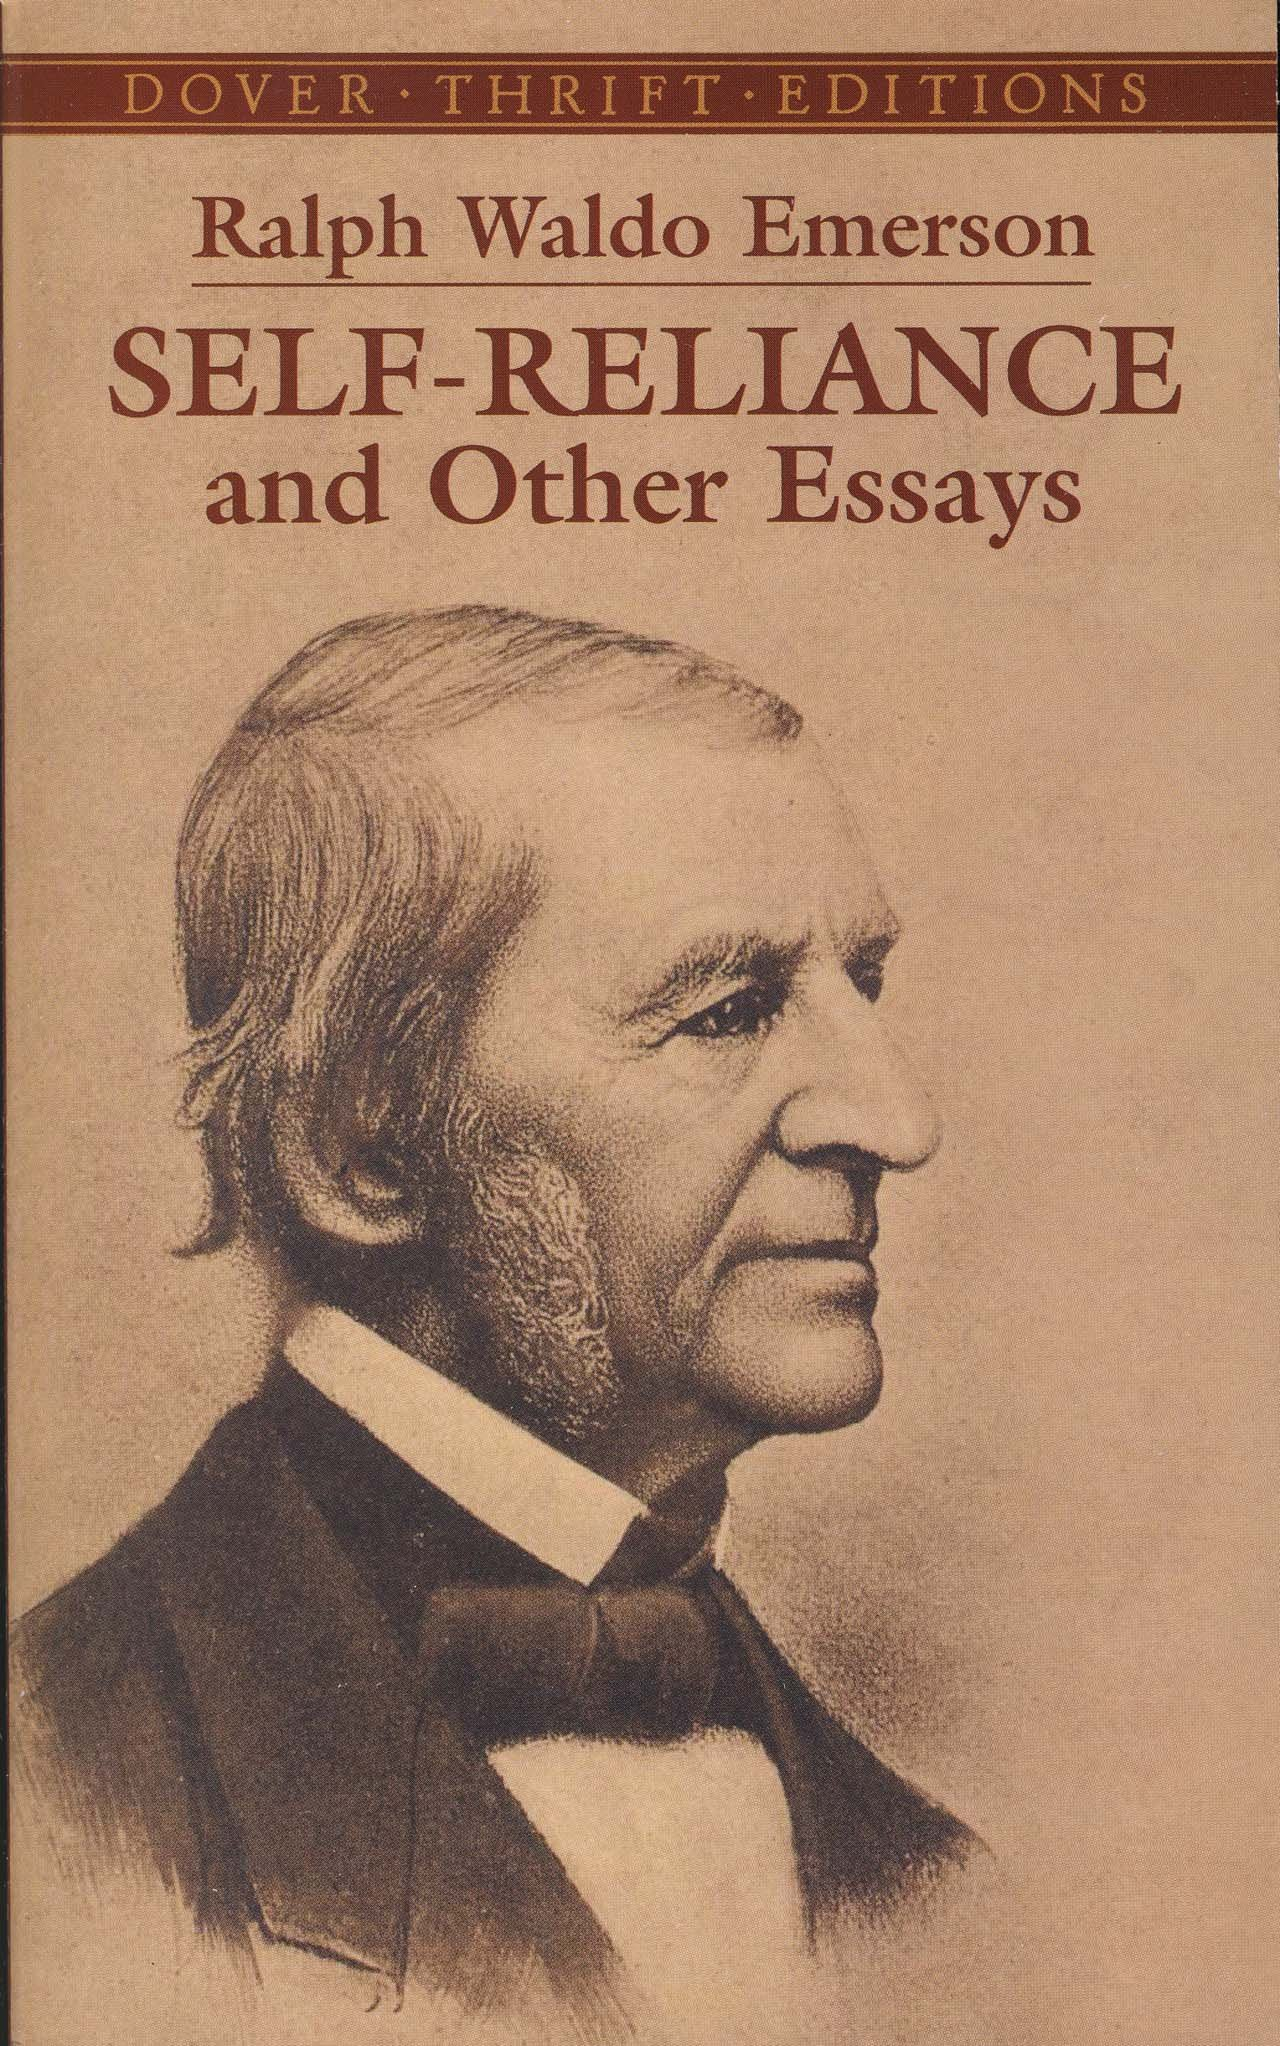 003 91btiwopxal Essay Example Emerson Dreaded Essays Self Reliance And Other Second Series Nature Full